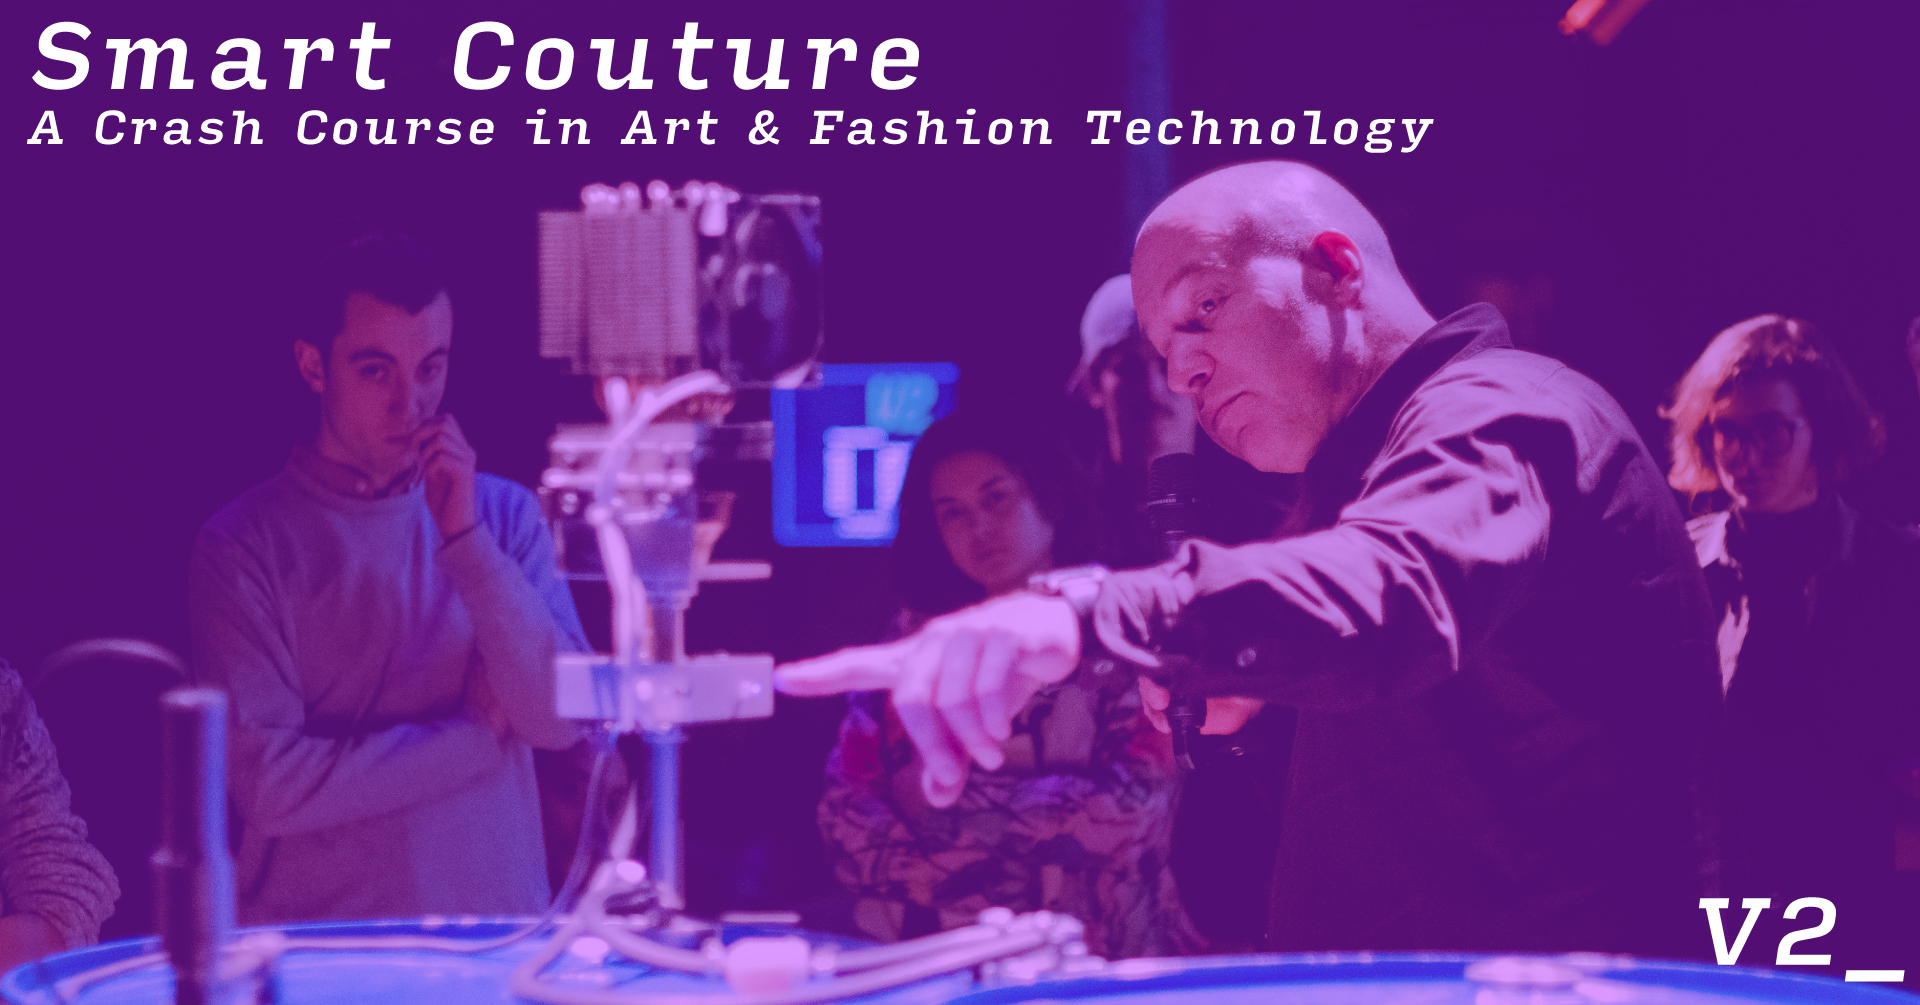 A Crash Course in Art & Media Technology: Smart Couture